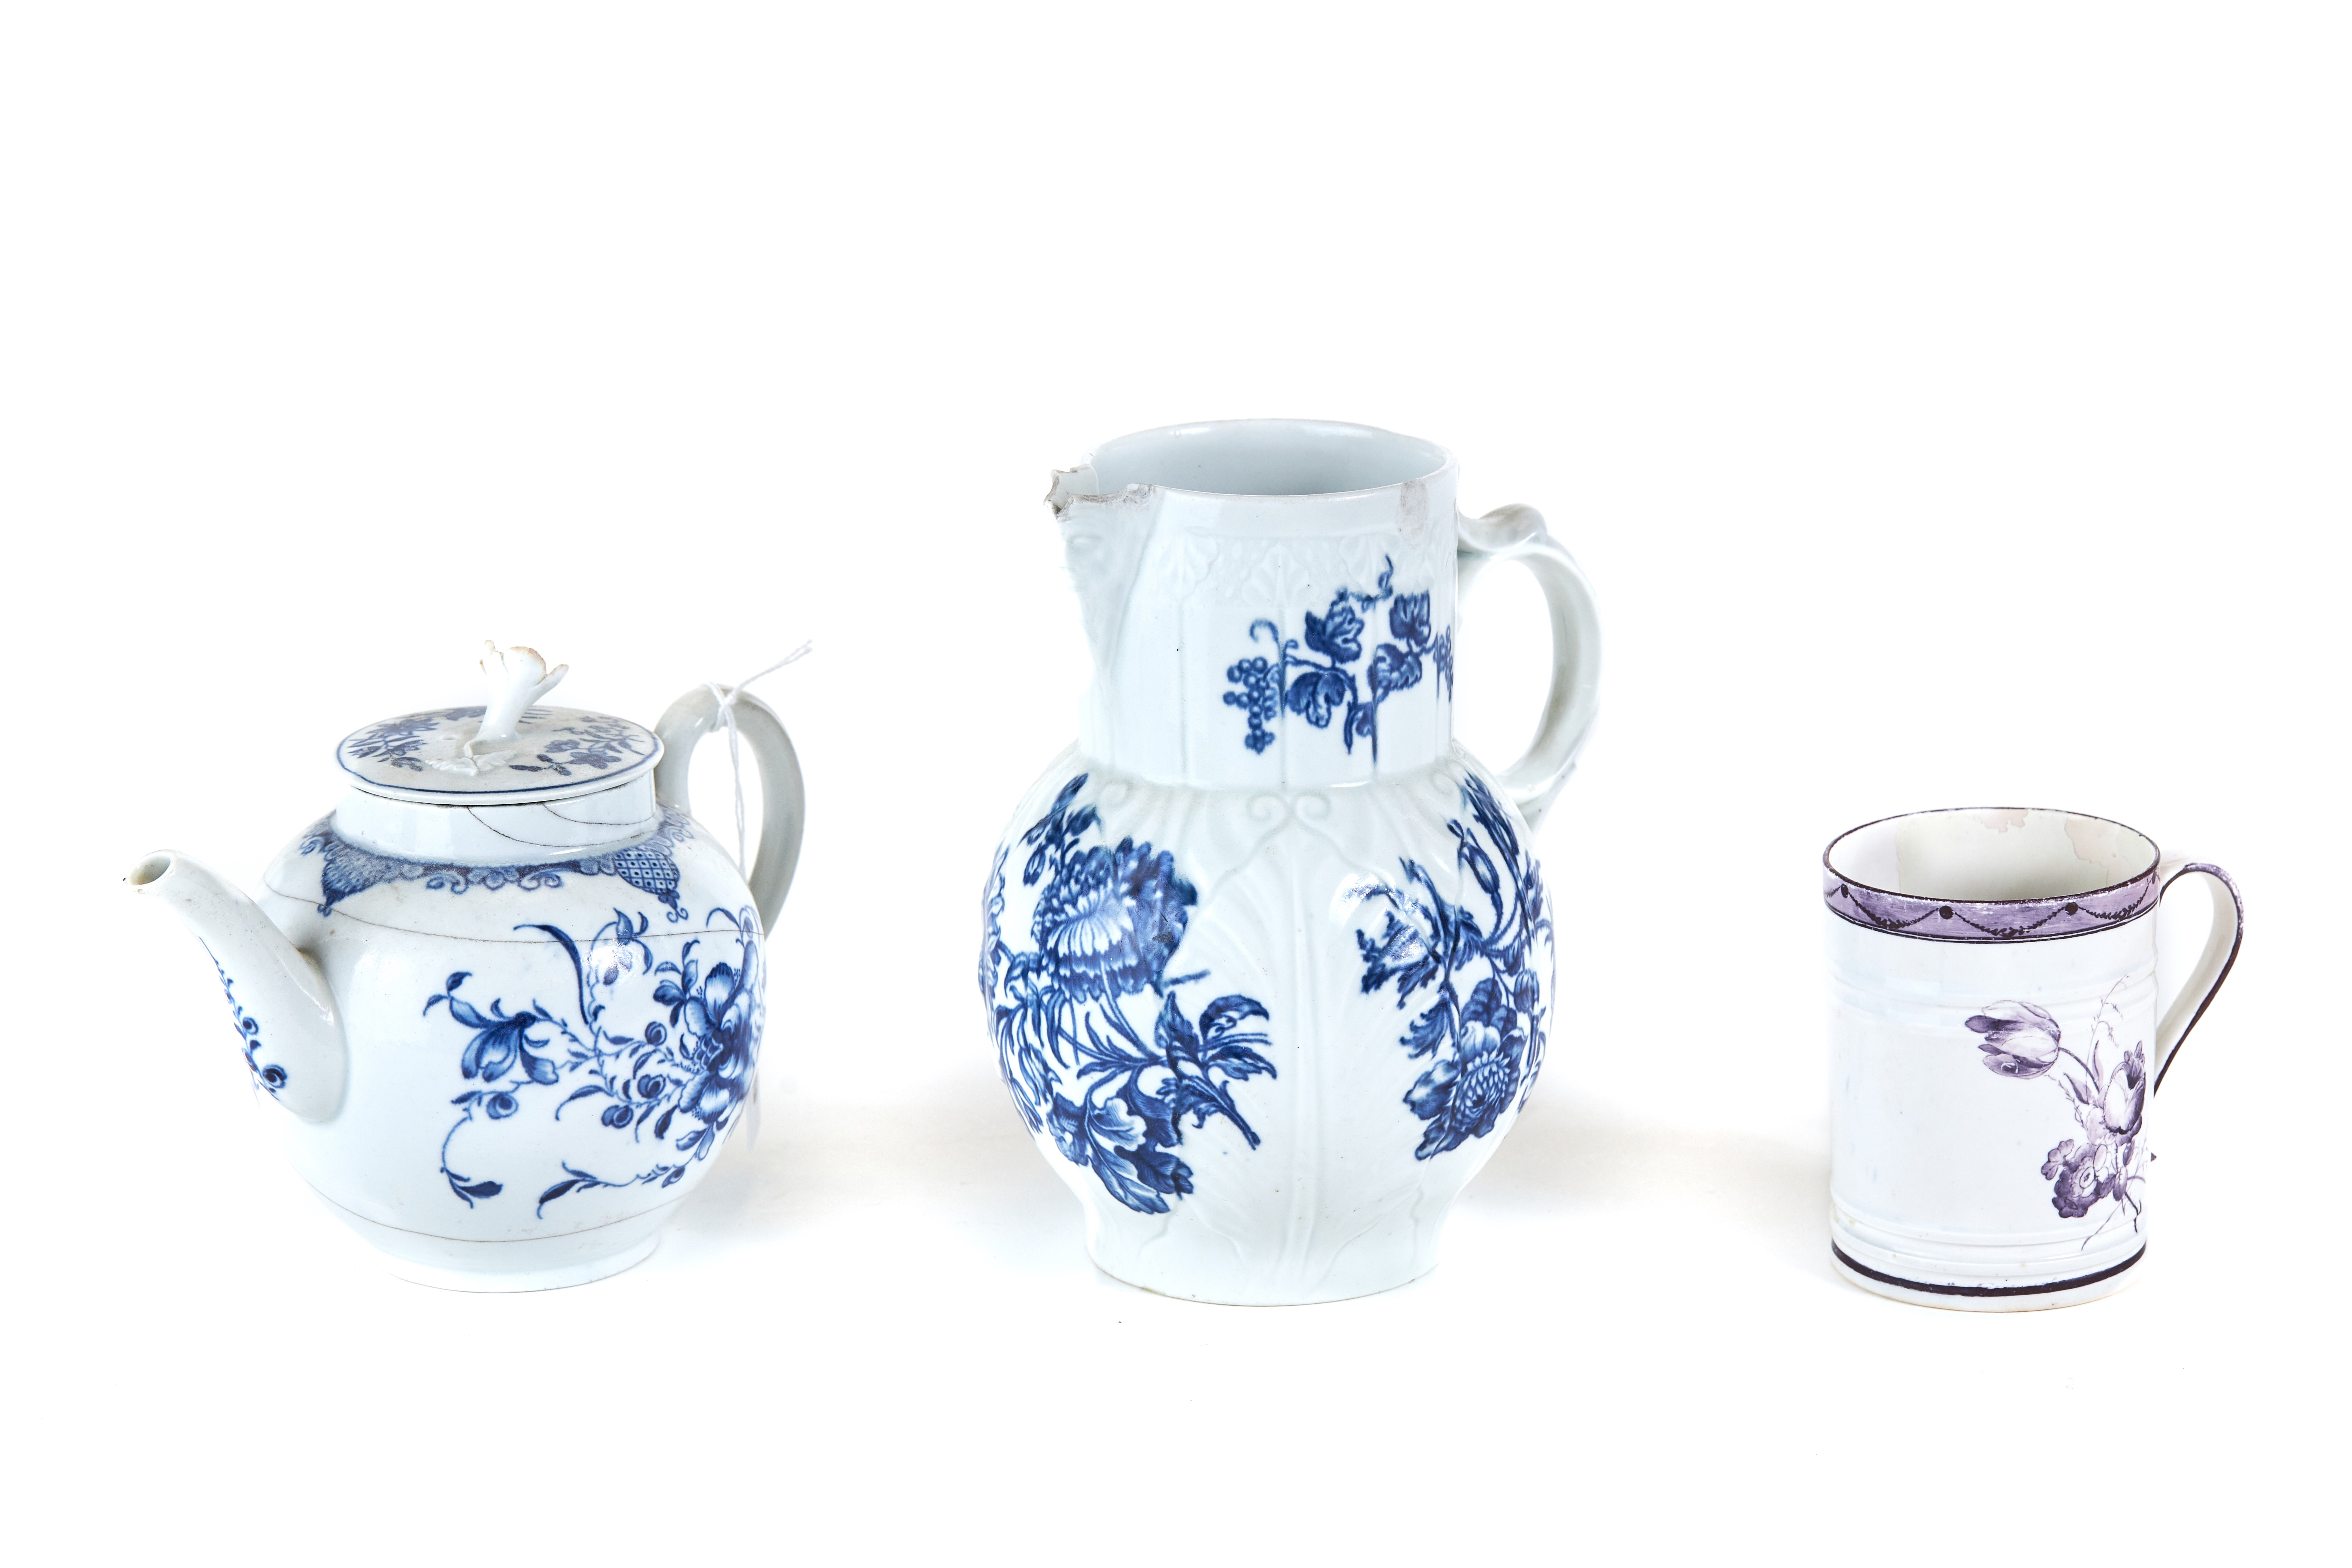 AN 18TH CENTURY WORCESTER PORCELAIN TEAPOT AND COVER decorated in underglaze blue with flowers and